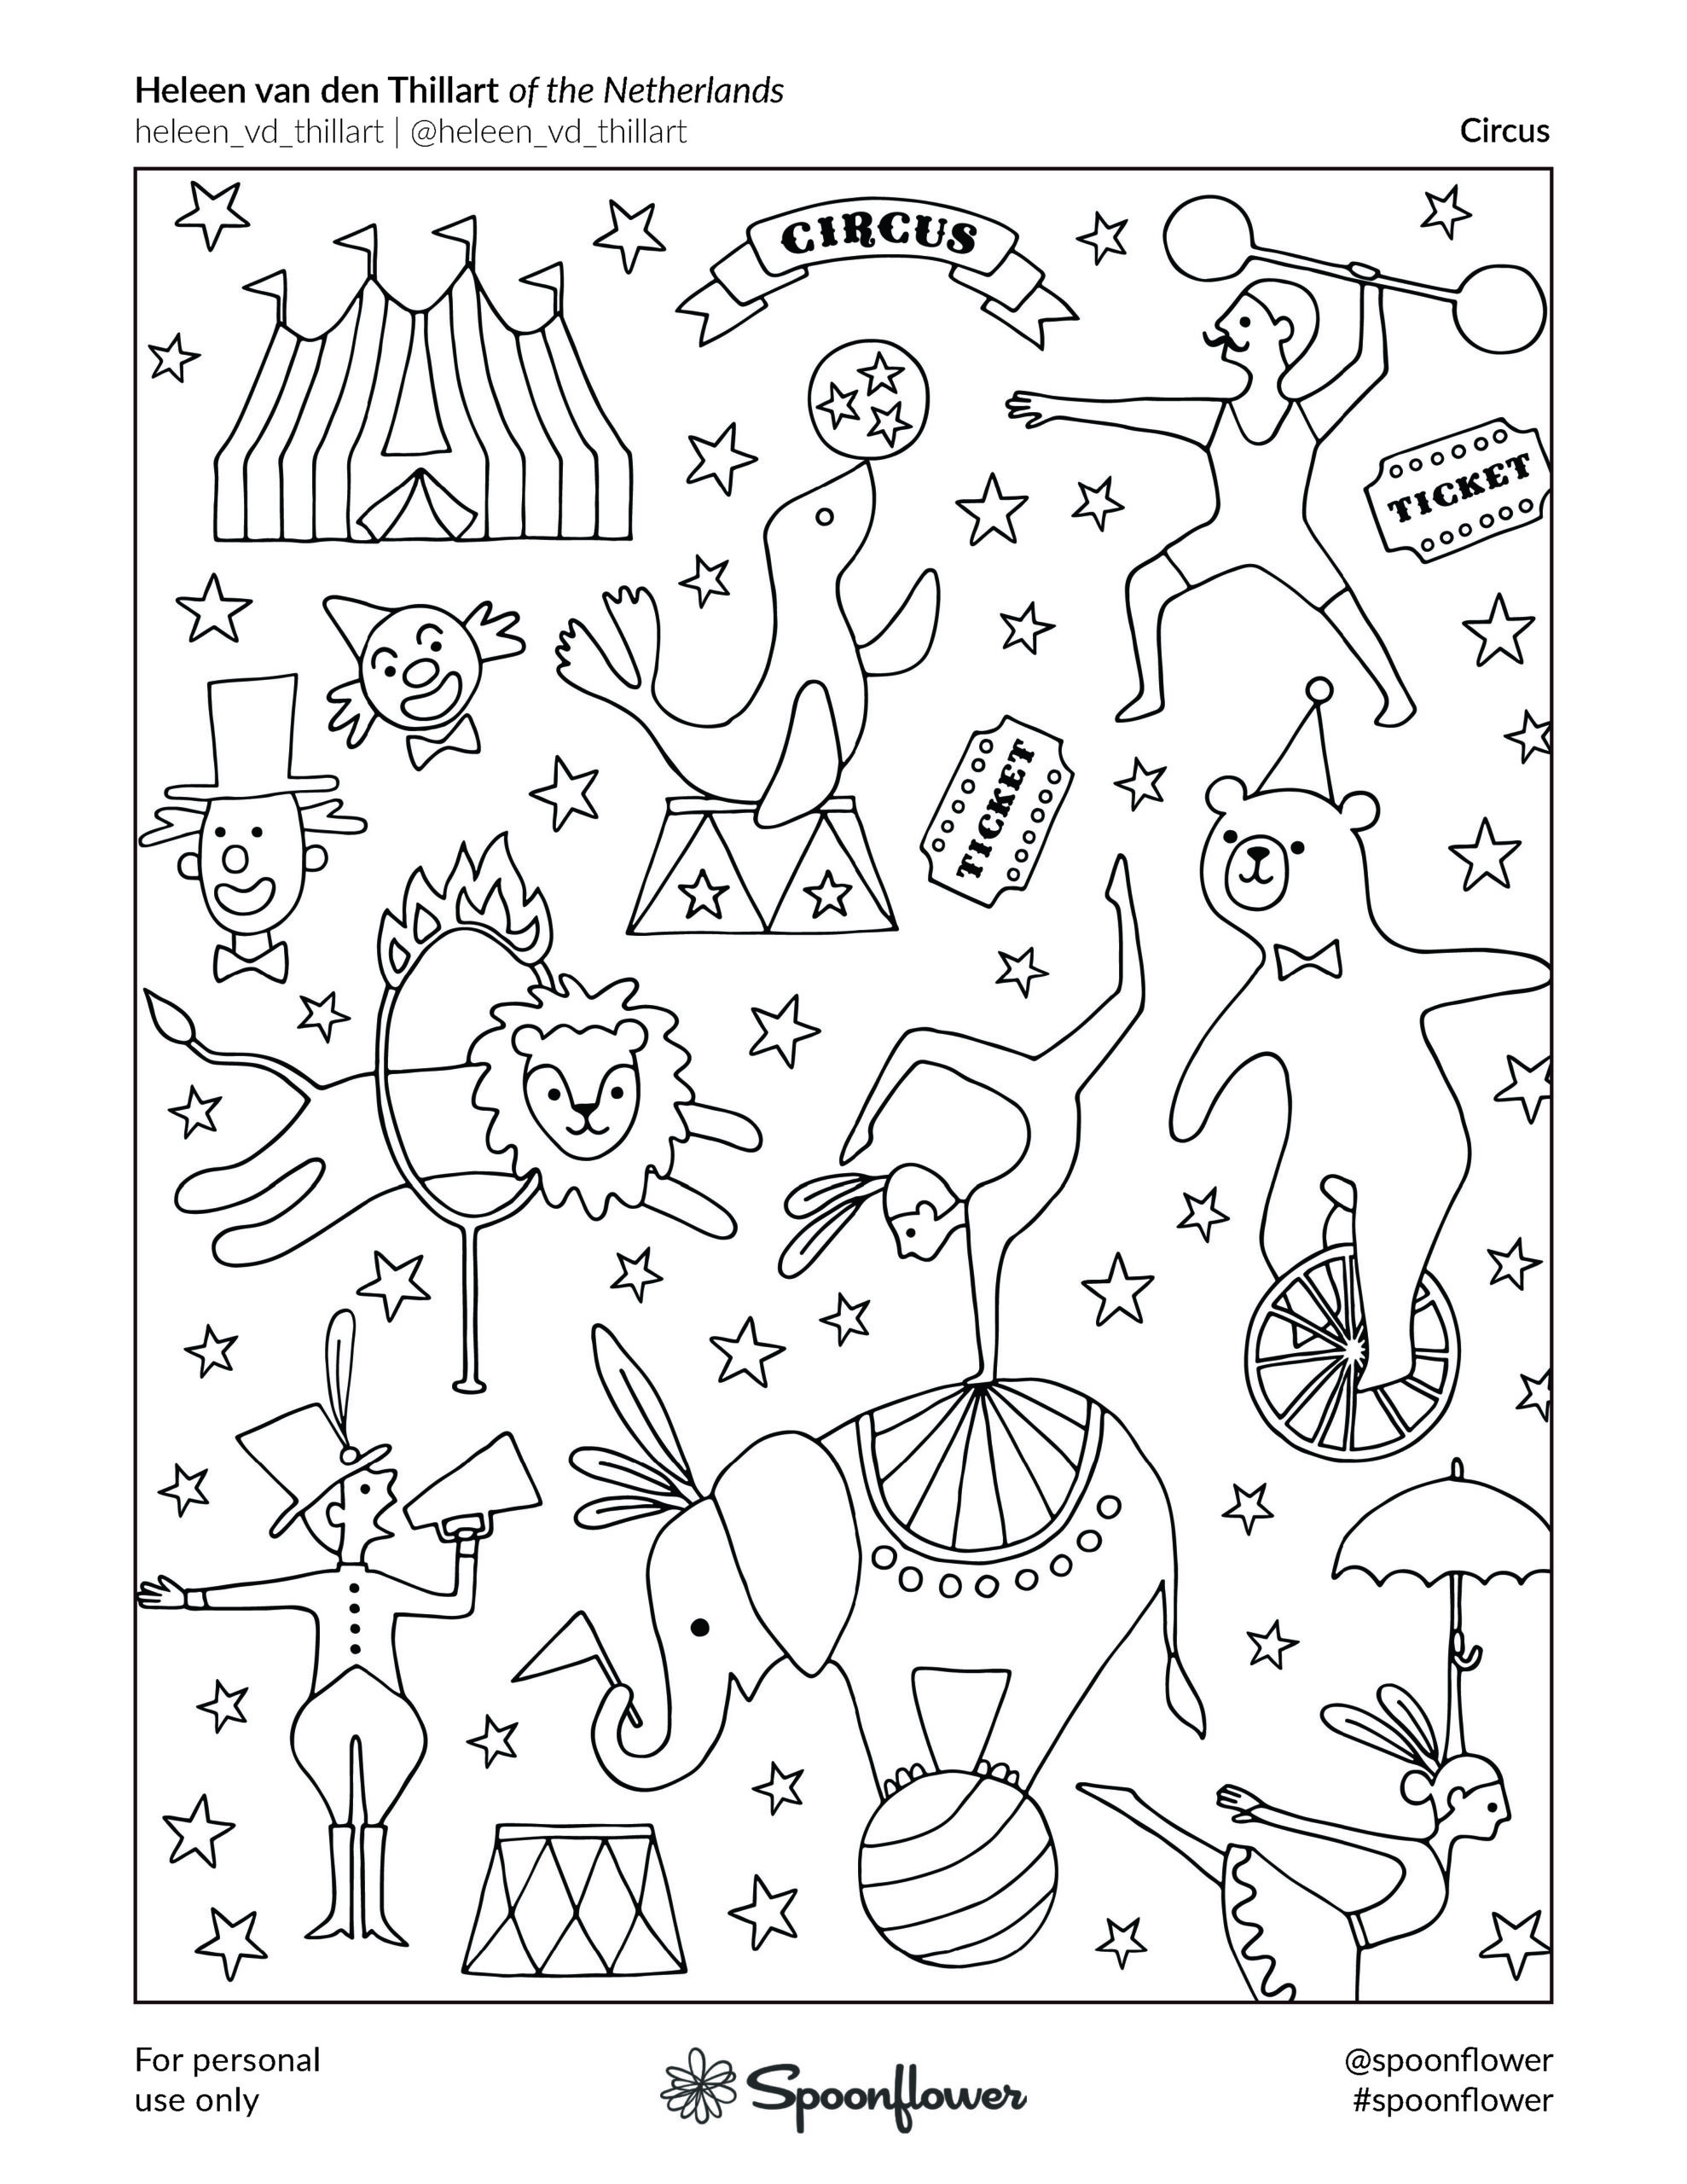 Coloring Book Page - Circus by Heleen van den Thillart